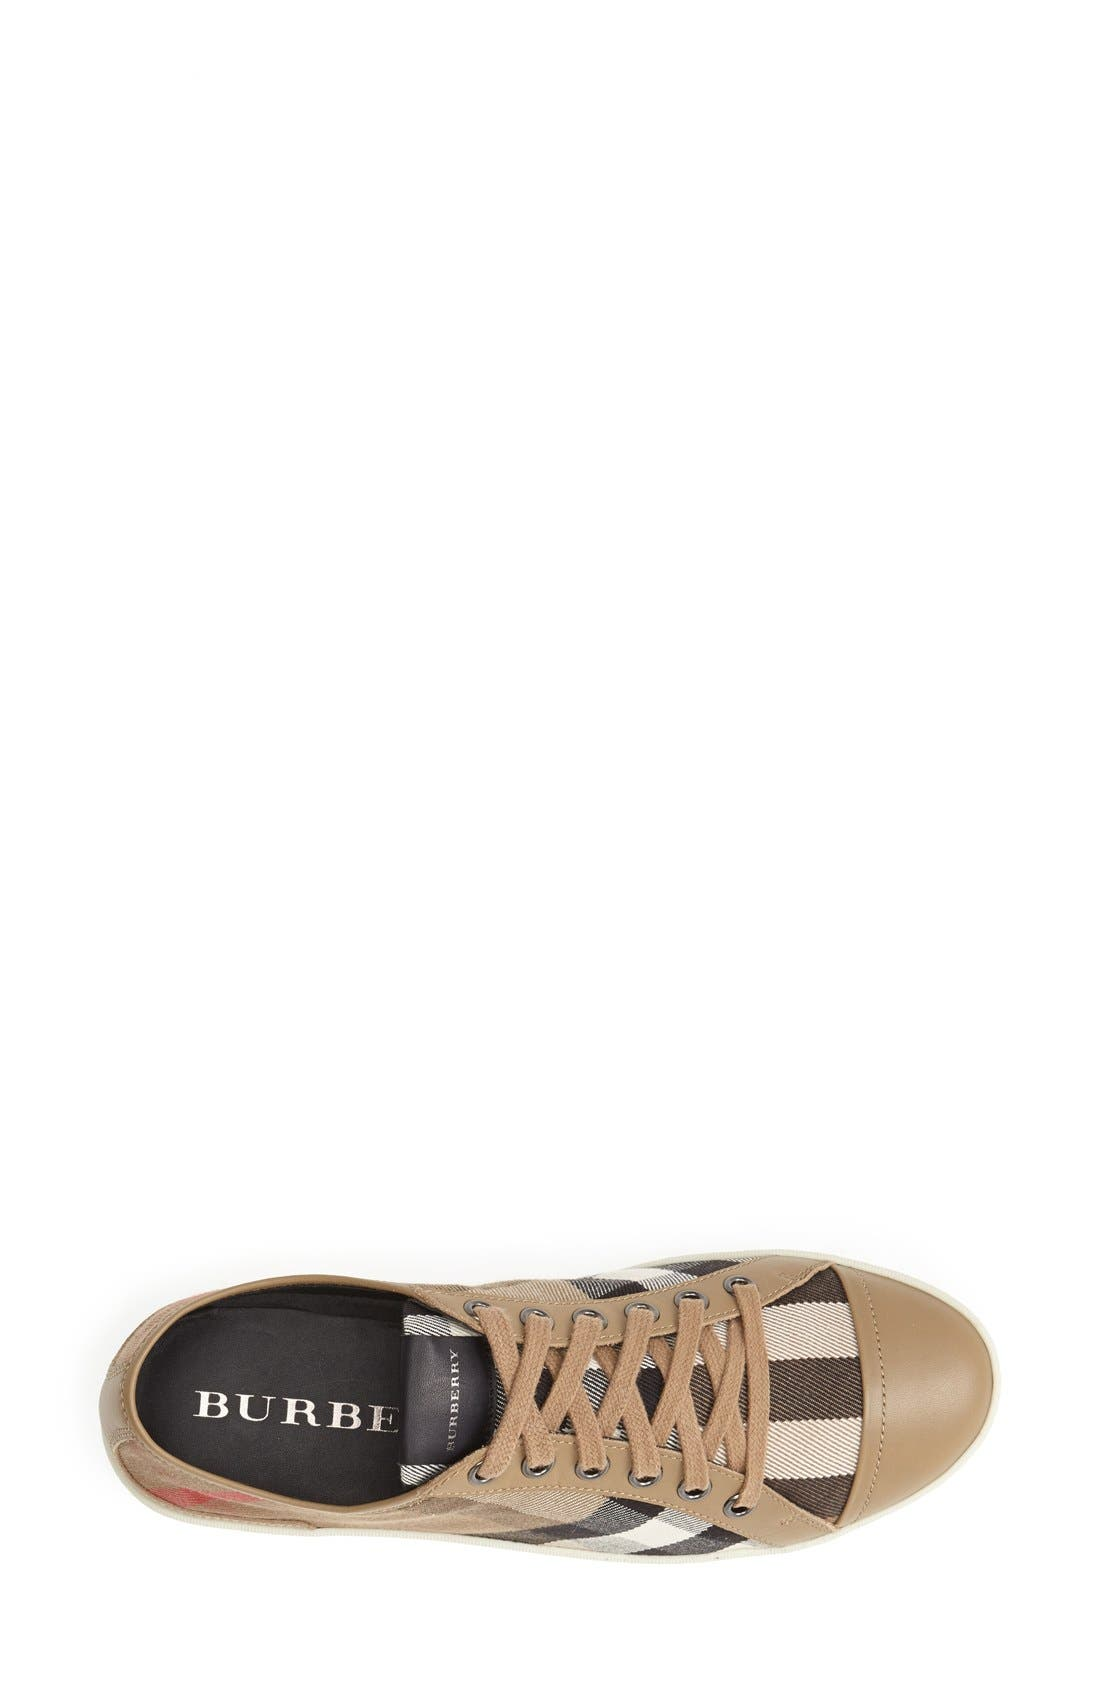 Alternate Image 3  - Burberry Check Print Sneaker (Women)